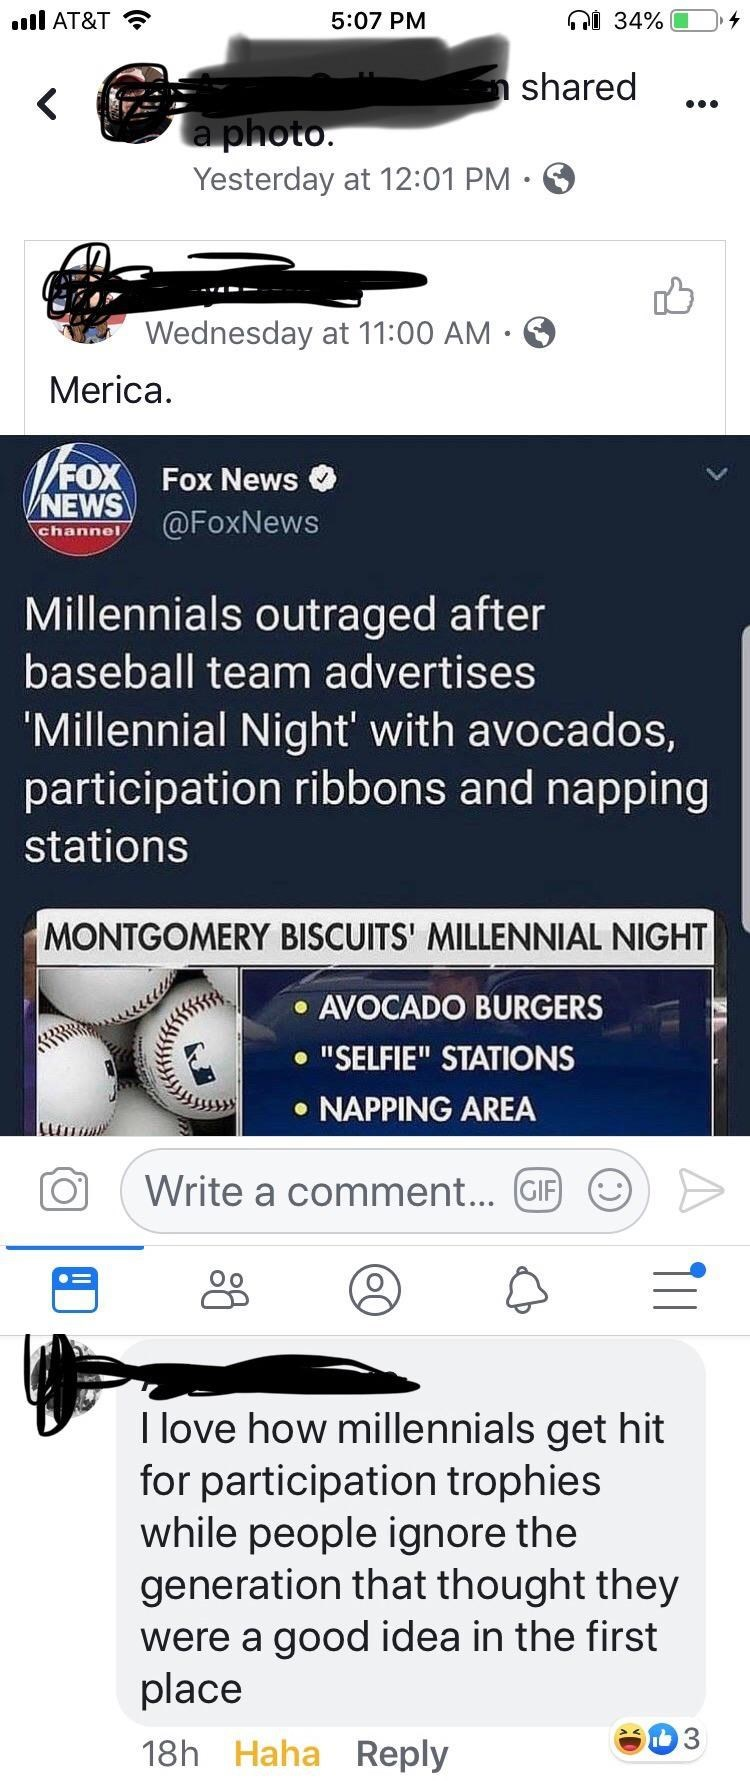 """Text - O 34% ll AT&T 5:07 PM shared a photo. Yesterday at 12:01 PM Wednesday at 11:00 AM Merica /FOX NEWS@FoxNews Fox News channel Millennials outraged after baseball team advertises 'Millennial Night' with avocados, participation ribbons and napping stations MONTGOMERY BISCUITS' MILLENNIAL NIGHT